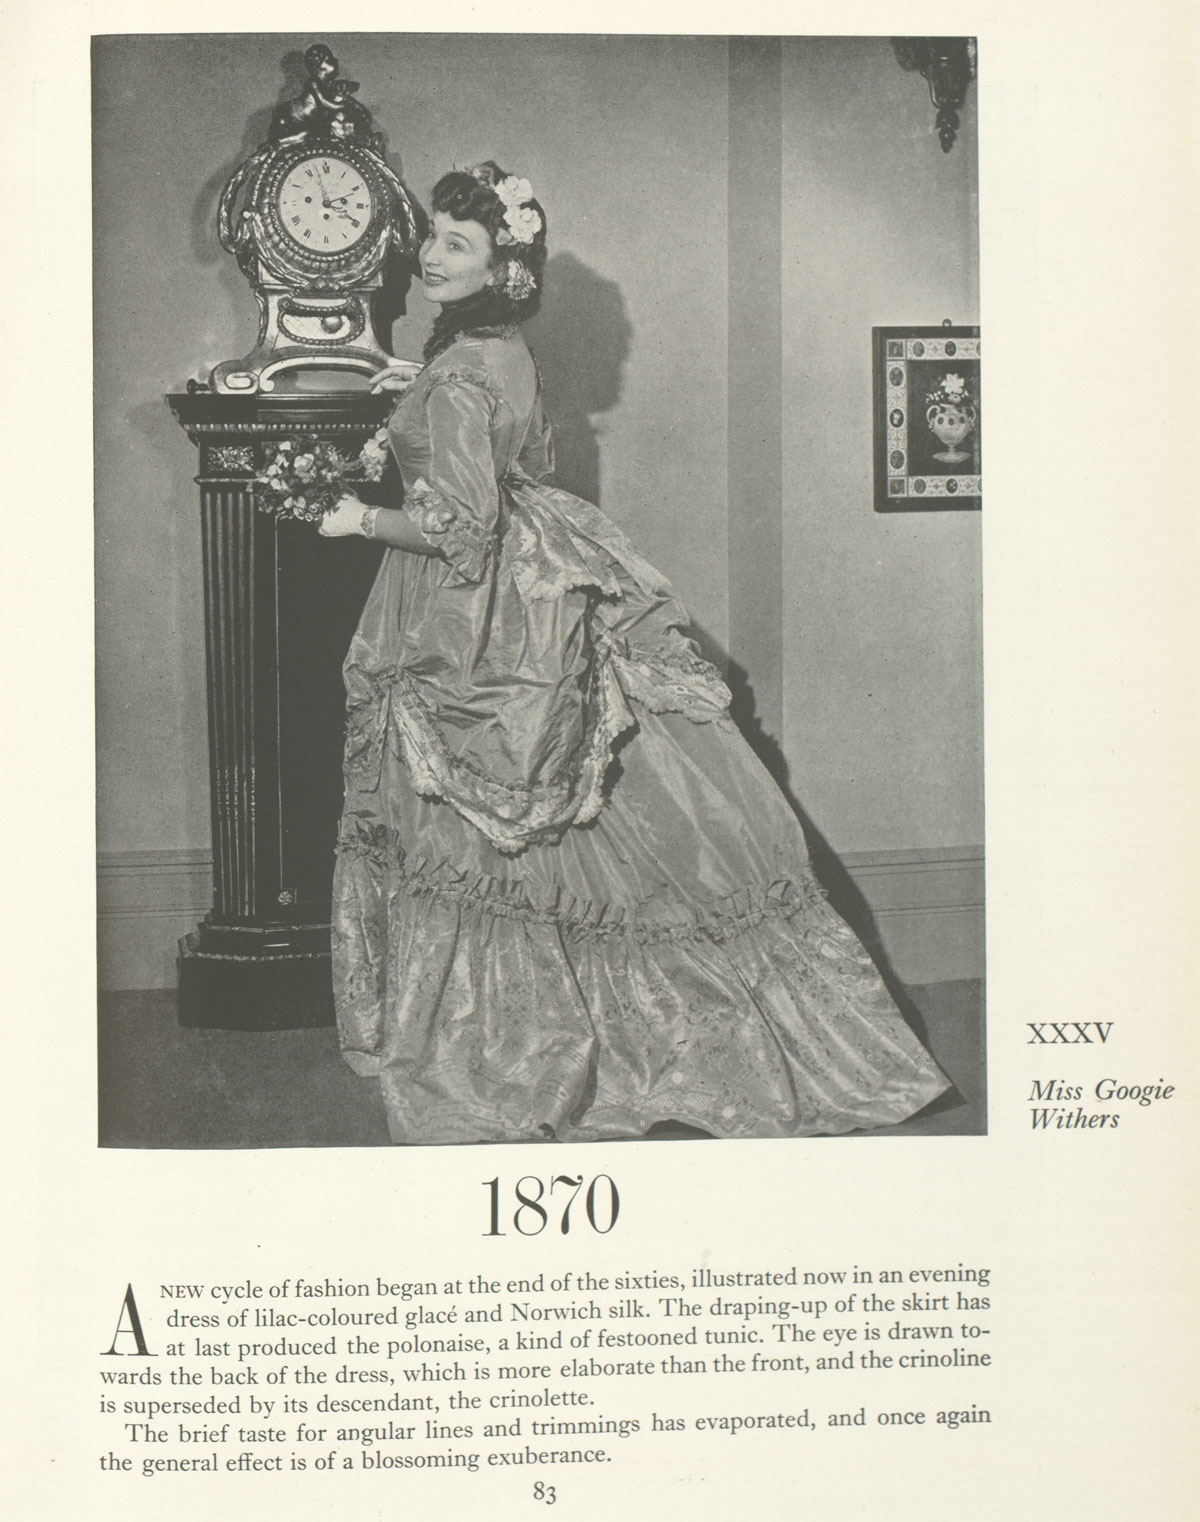 Actress Googie Withers wearing a gown dating from 1870 in Doris Langley Moore's The Woman in Fashion (1949). Photograph by Felix Fonteyn.